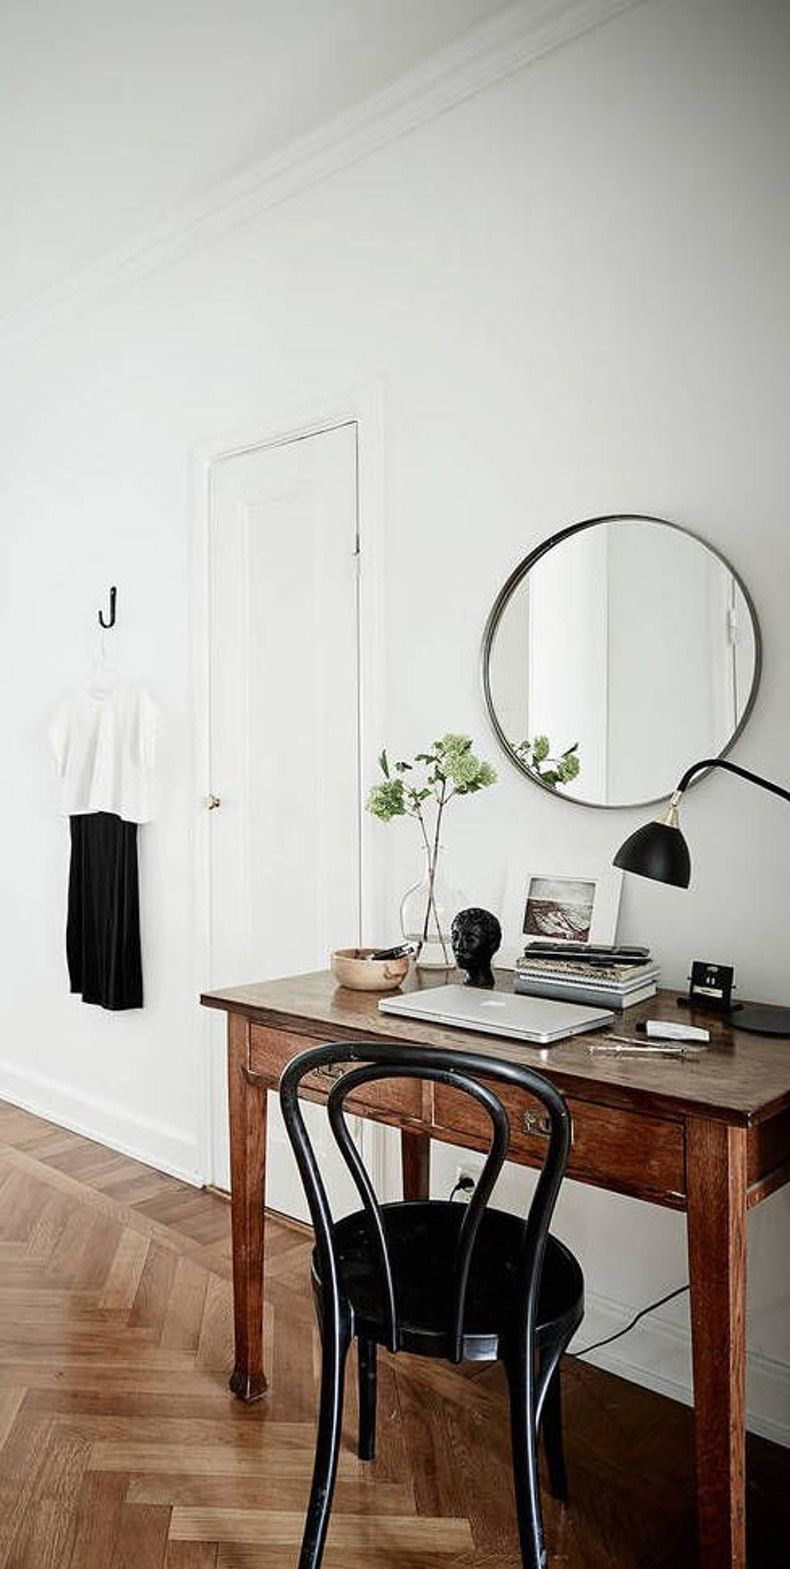 Simple black chair for dressing table